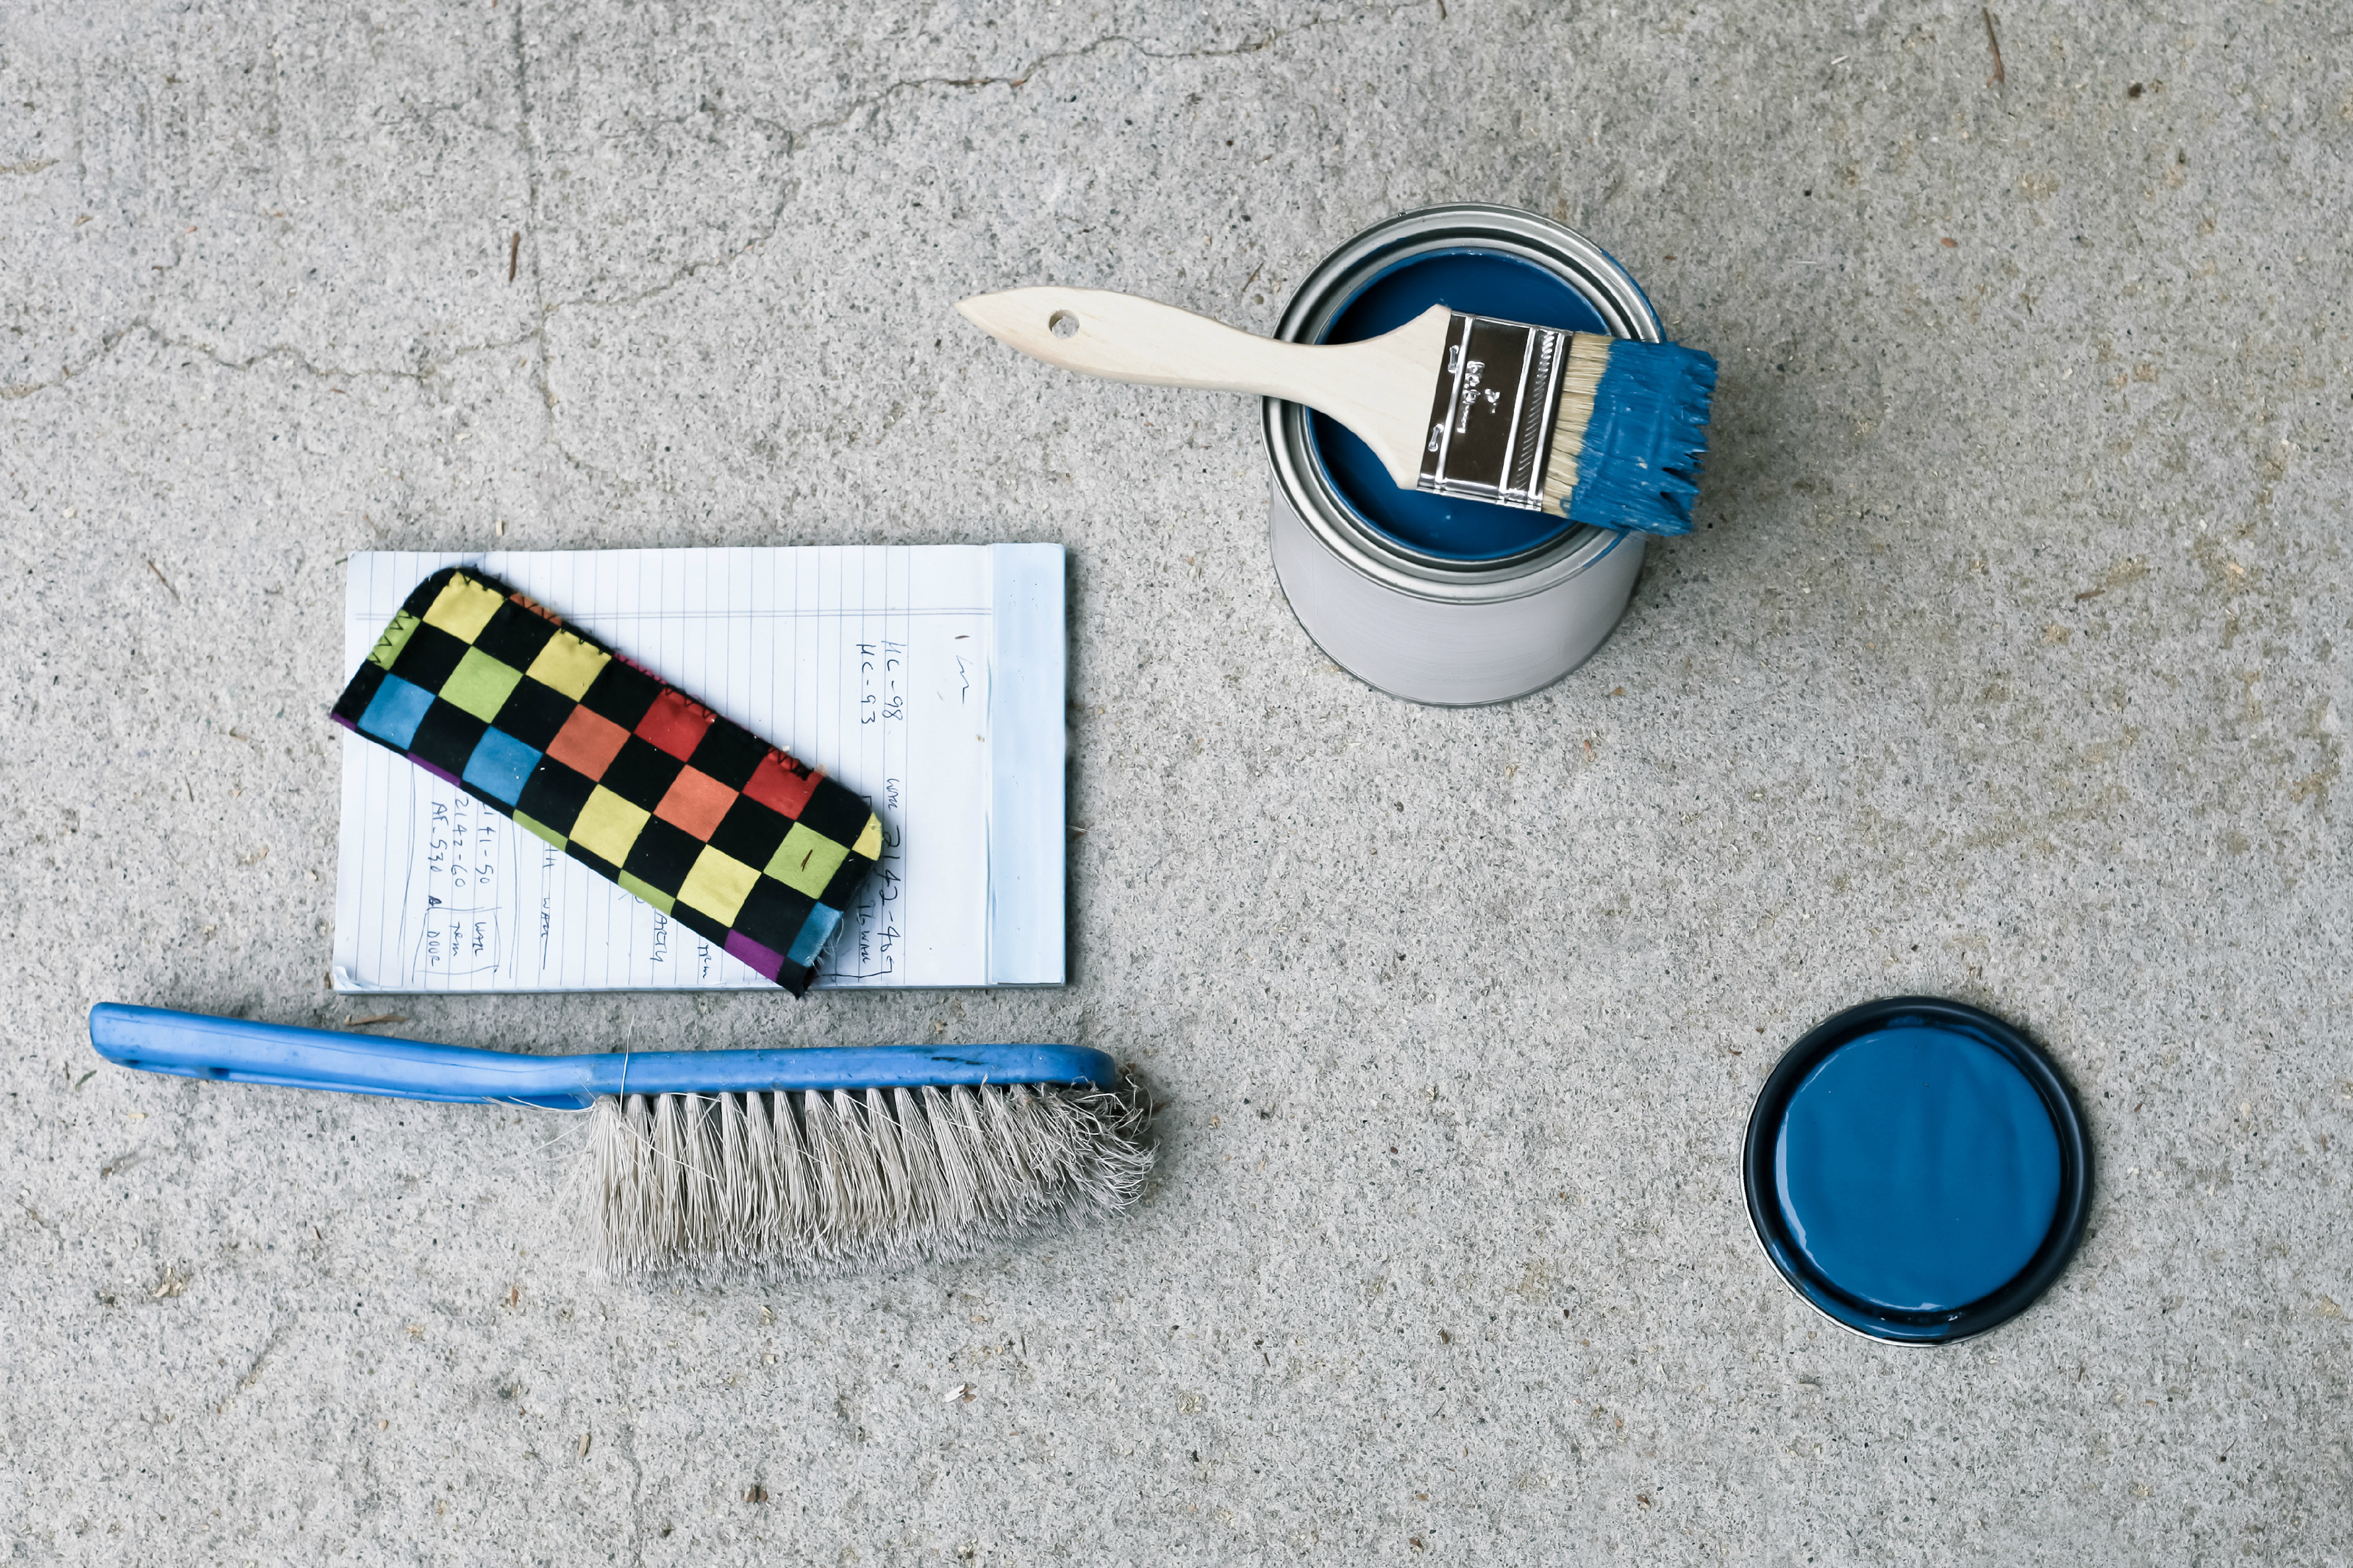 How To Paint Concrete In 5 Steps